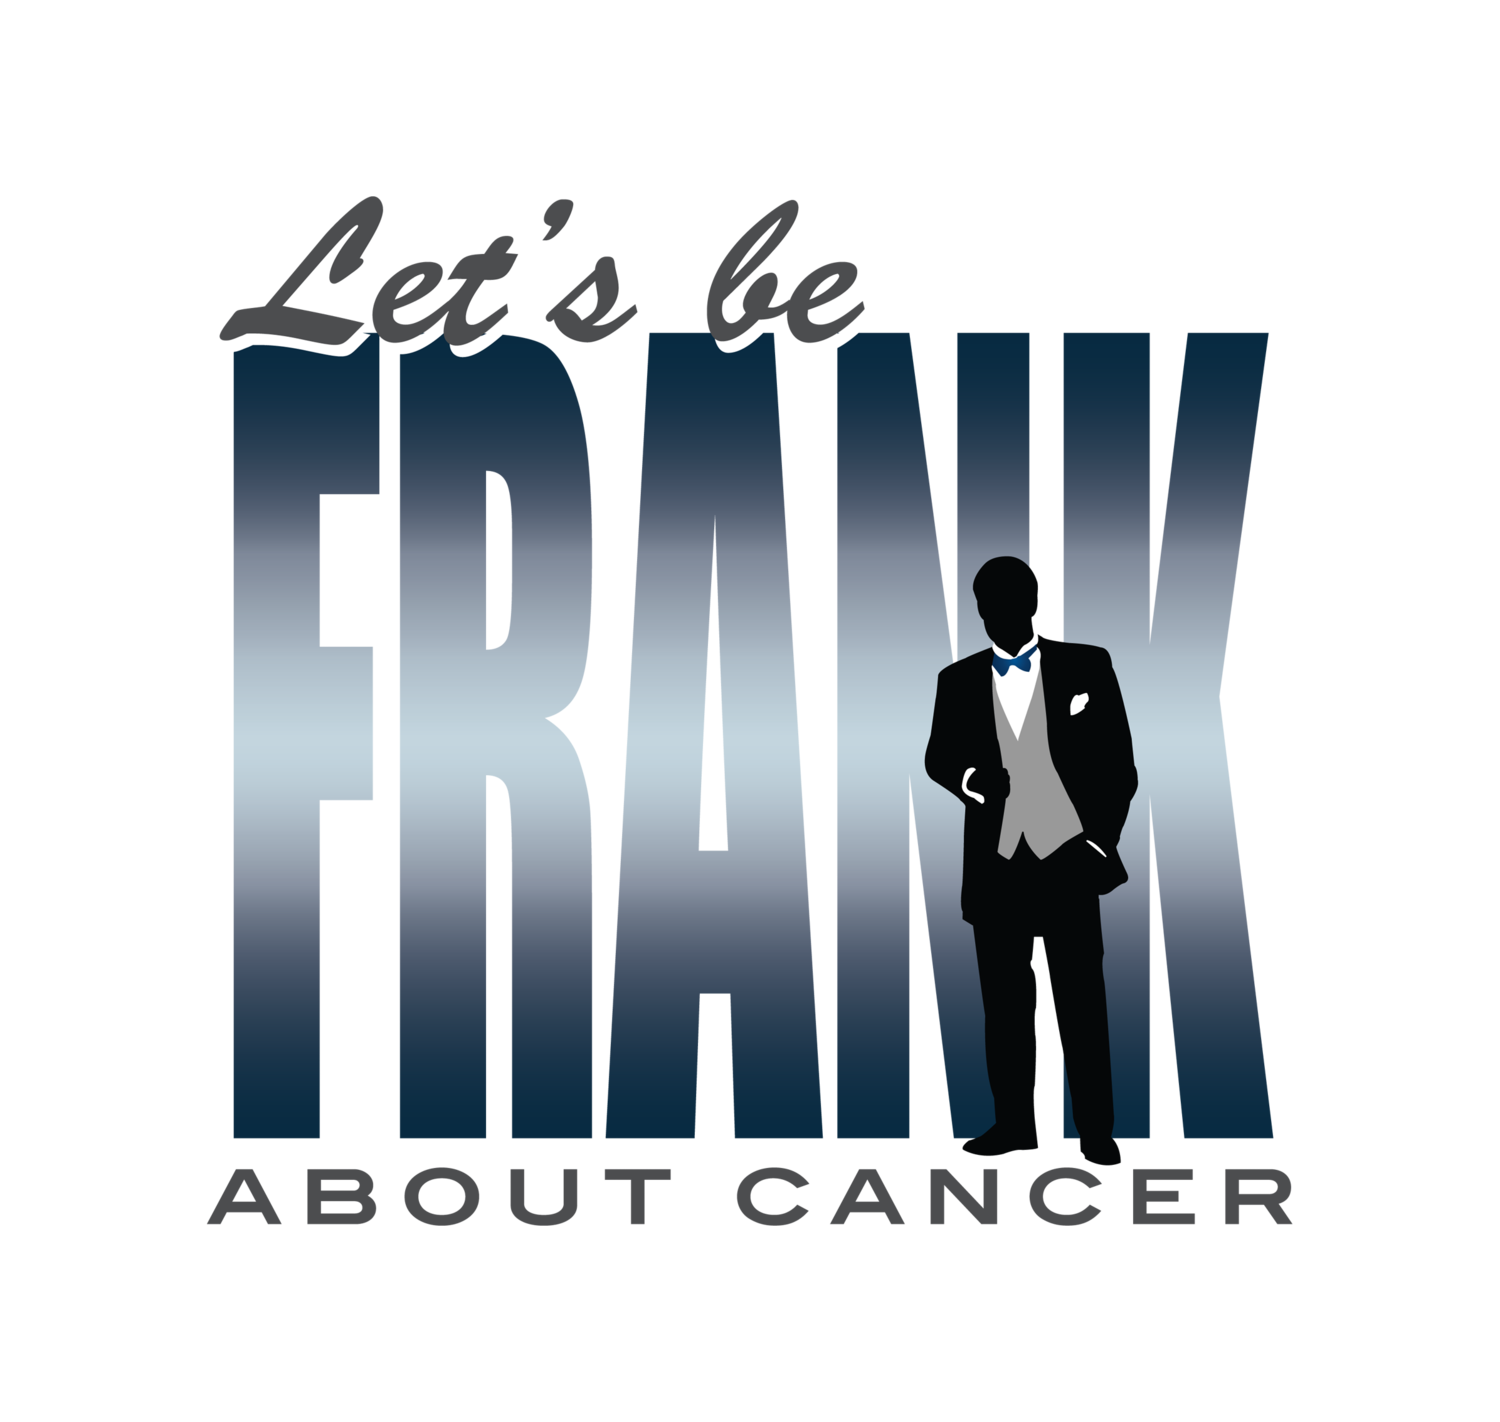 Let's  be frank about cancer